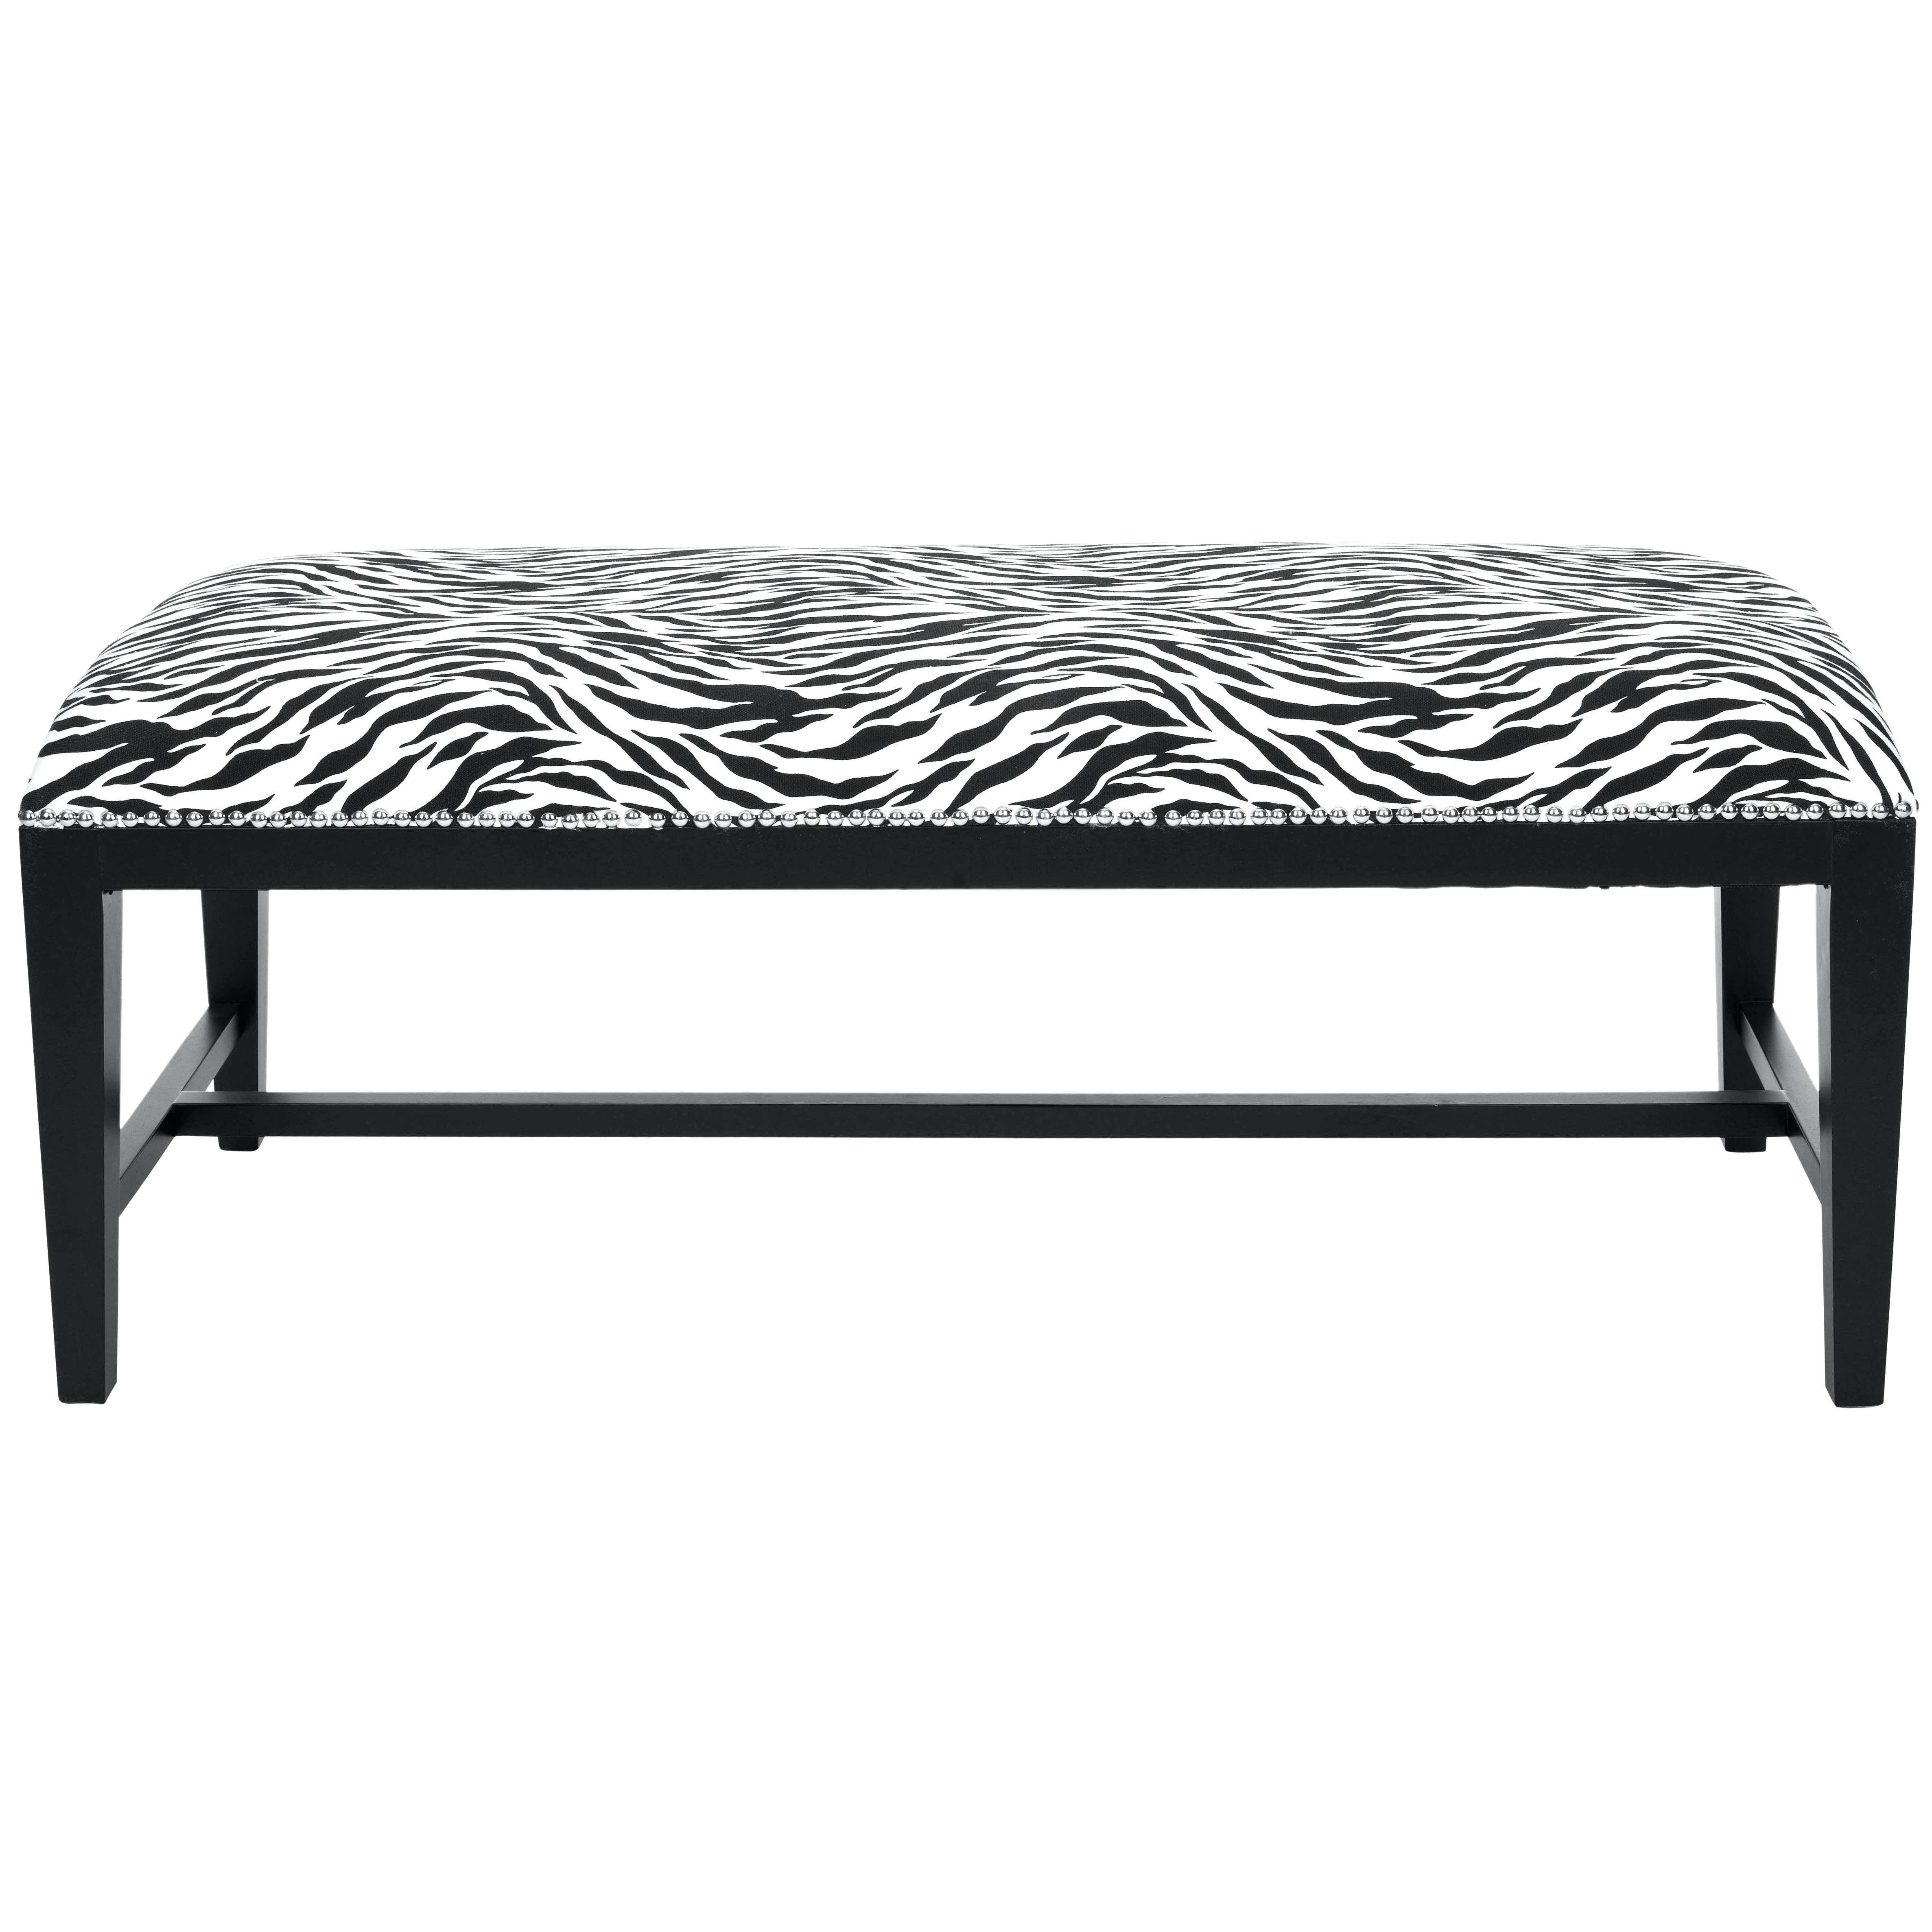 bench platinum seating grey at leopard silver chrome id fabric vintage benches polished master velvet midcentury f furniture